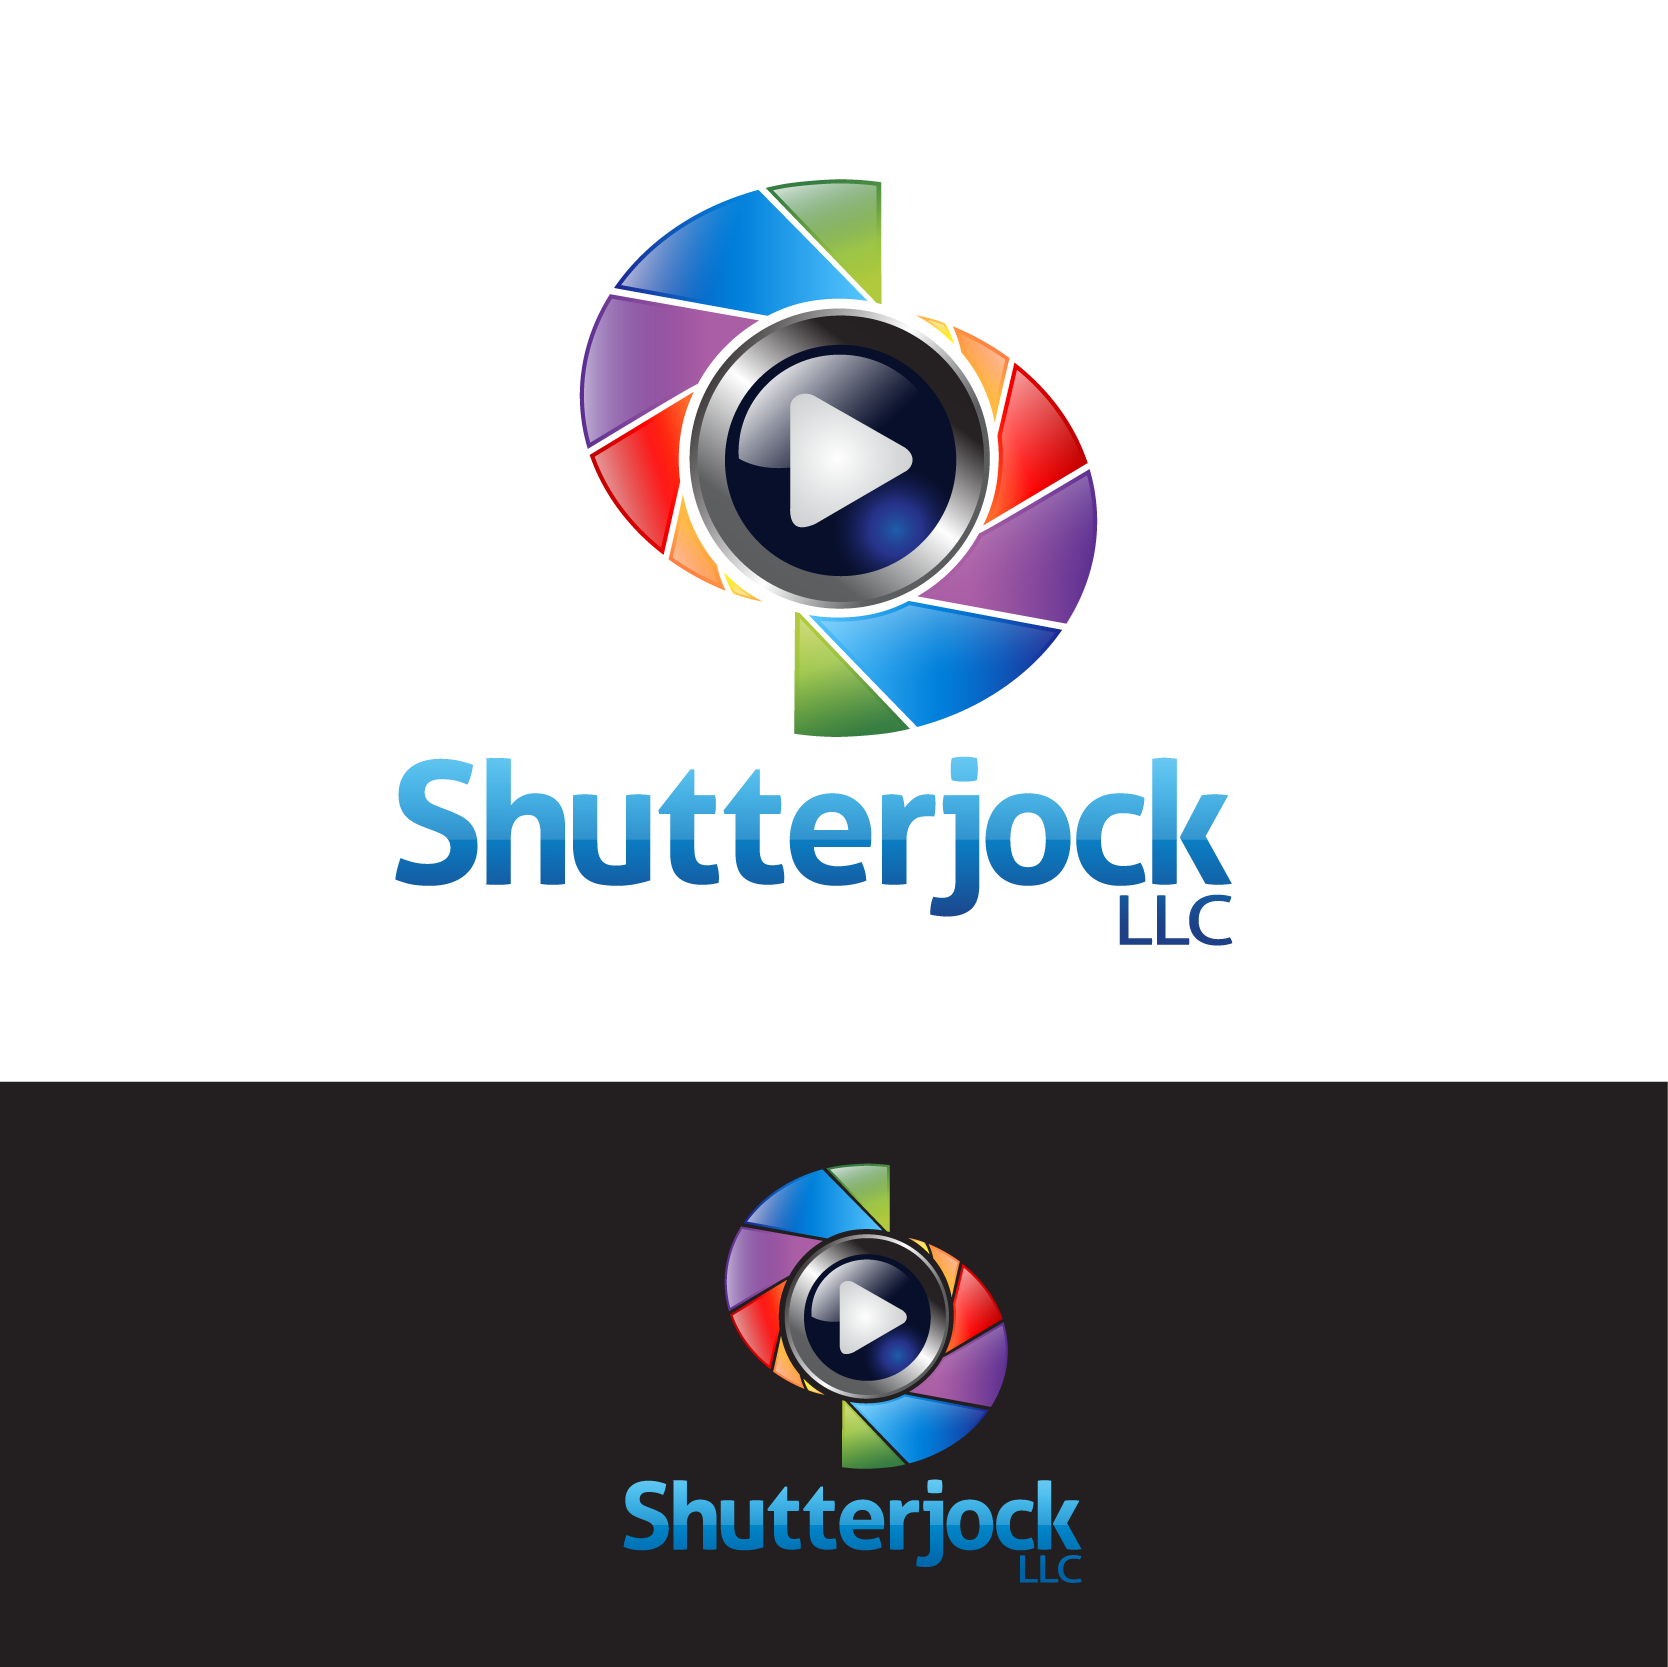 Logo Design by DENOK - Entry No. 99 in the Logo Design Contest Unique Logo Design Wanted for Shutterjock LLC.